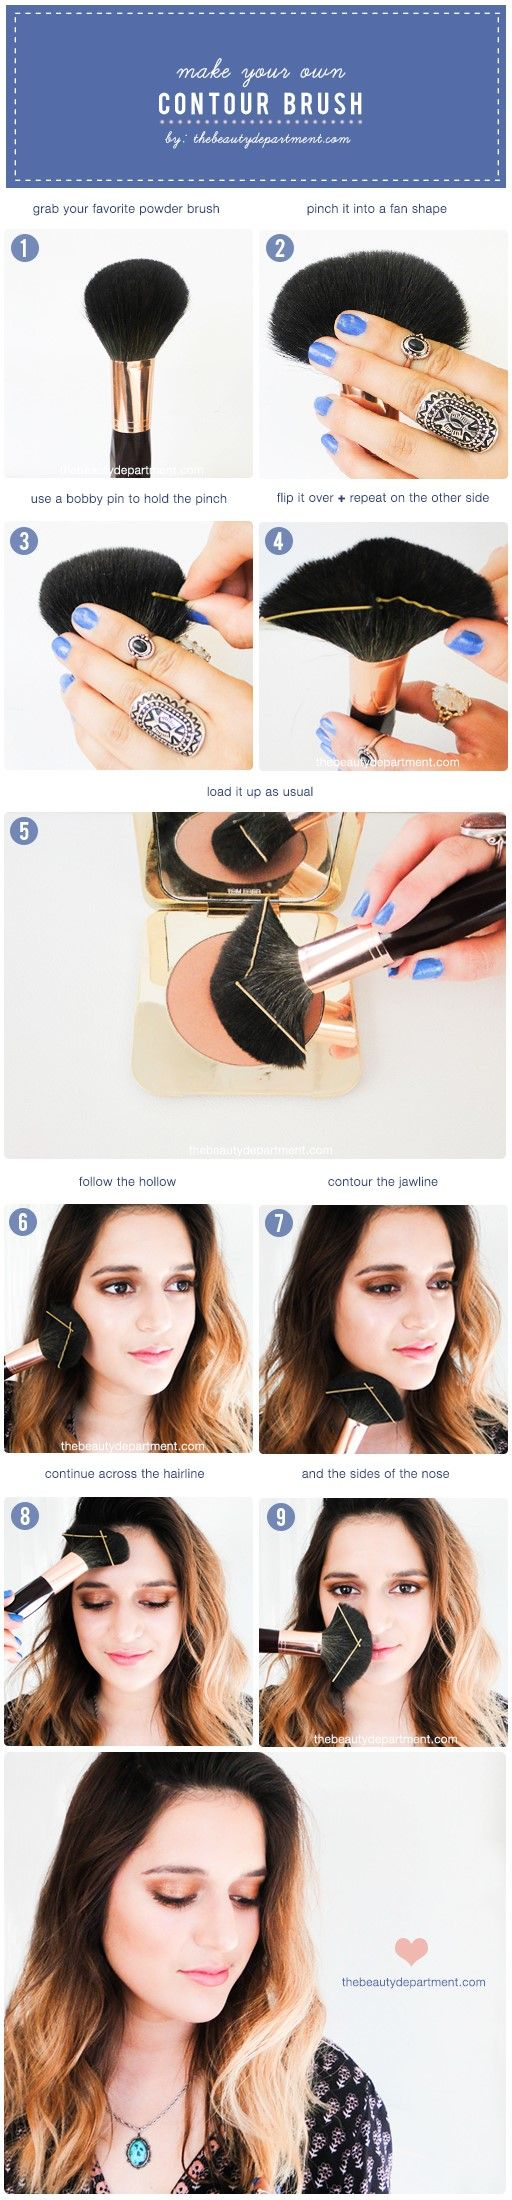 12 Creative Tips and Incredible Fashion Hacks That Will Make Your LIfe Better